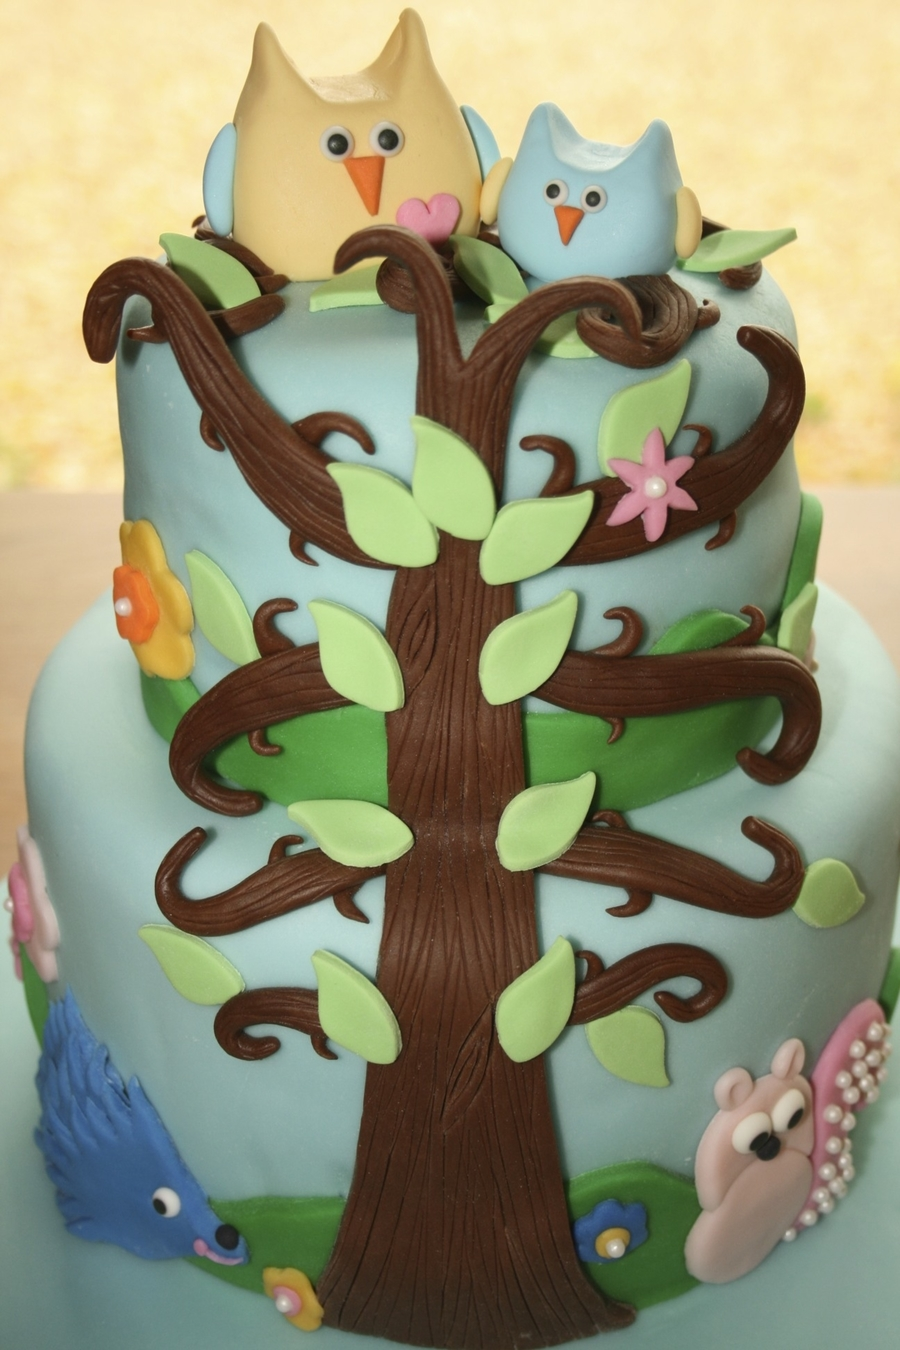 Happi Tree on Cake Central